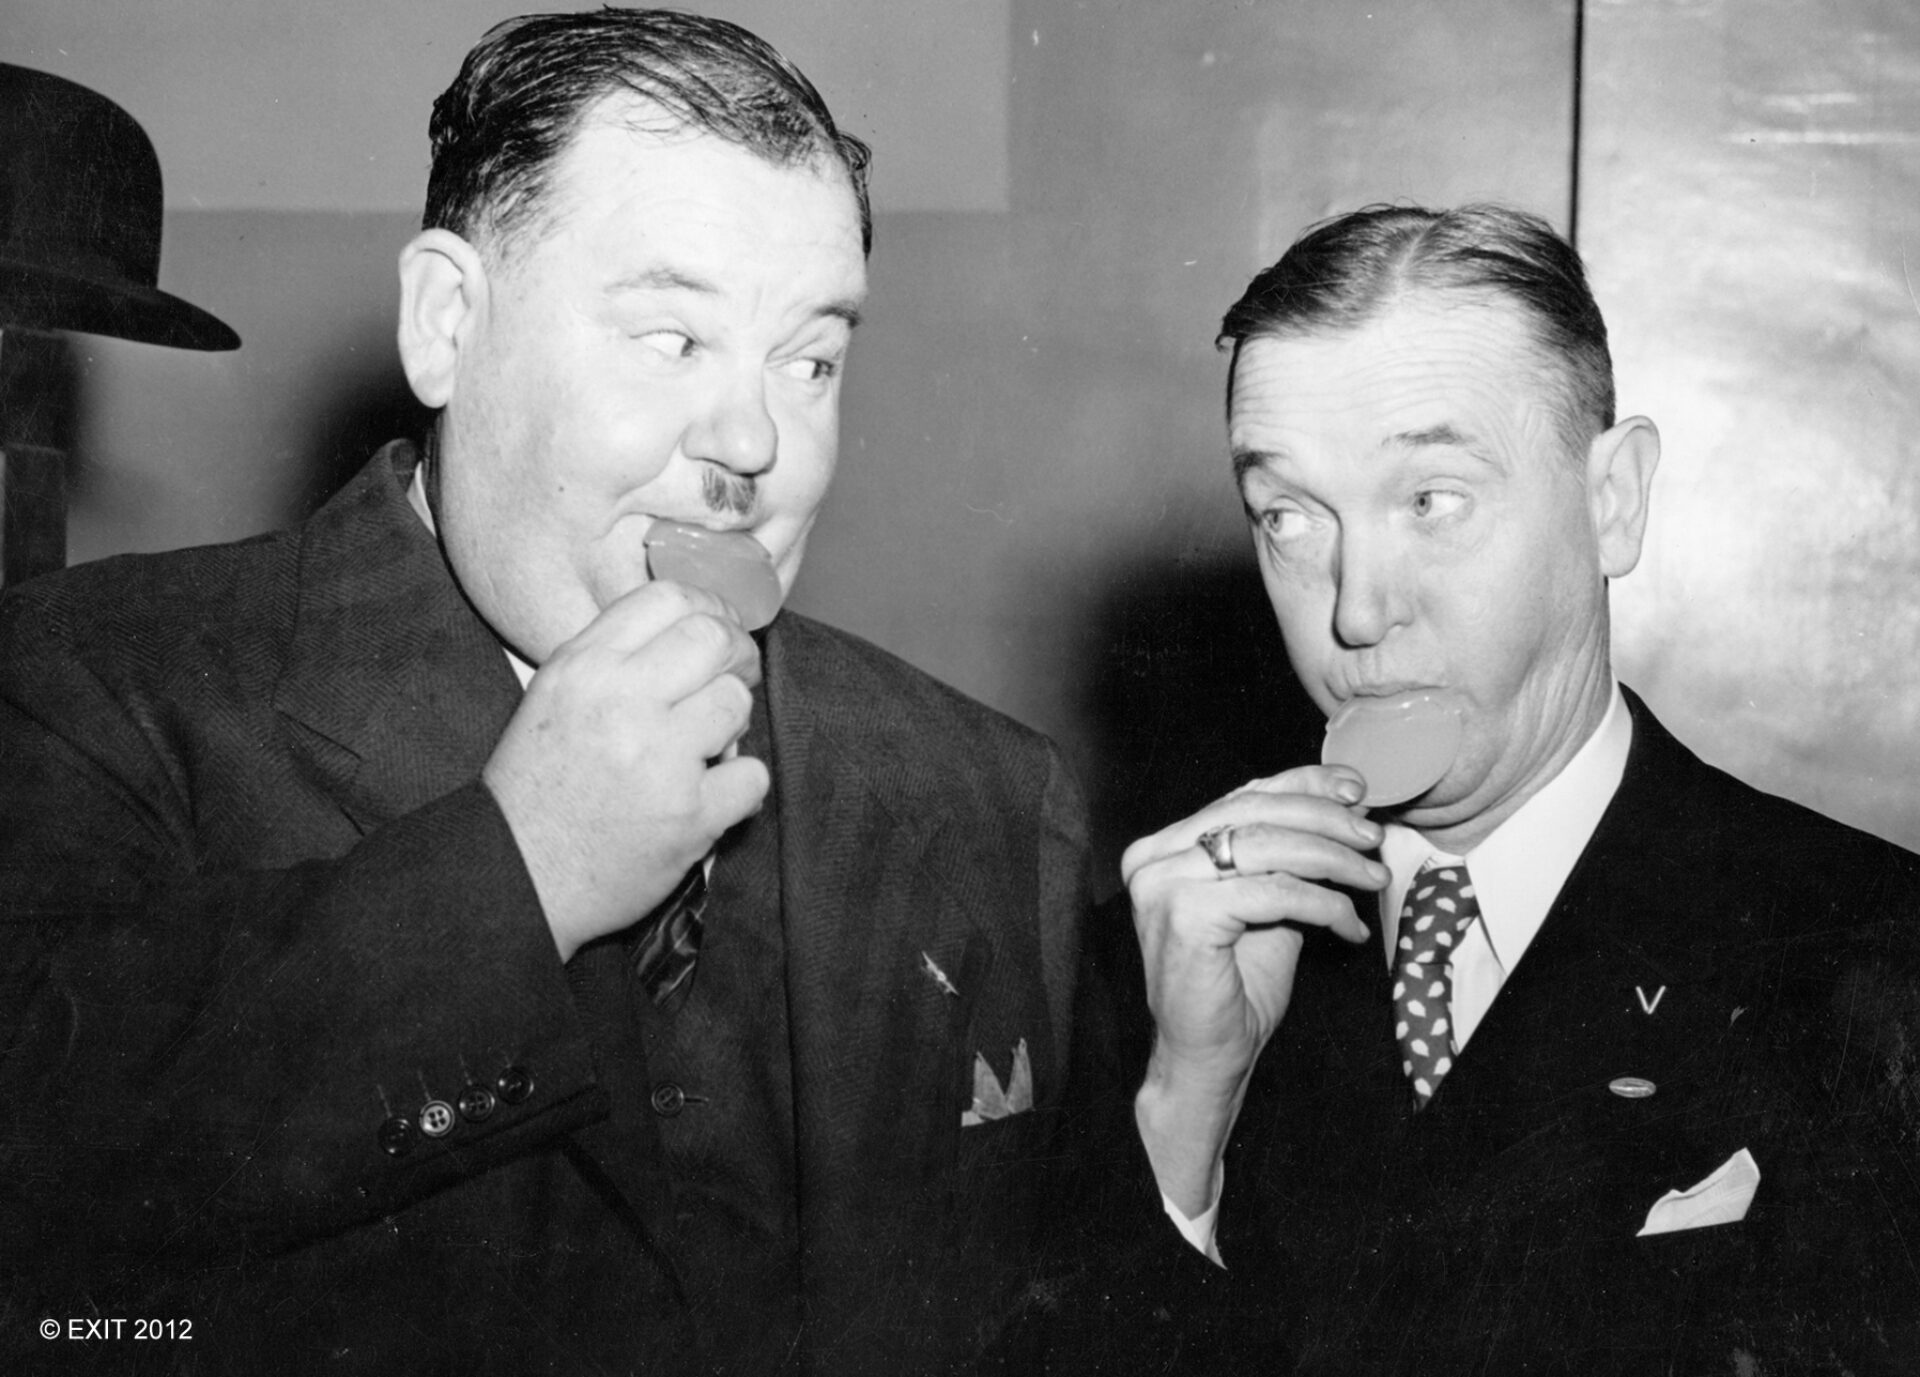 Laurel and Hardy - Their Lives and Magic | IDFA